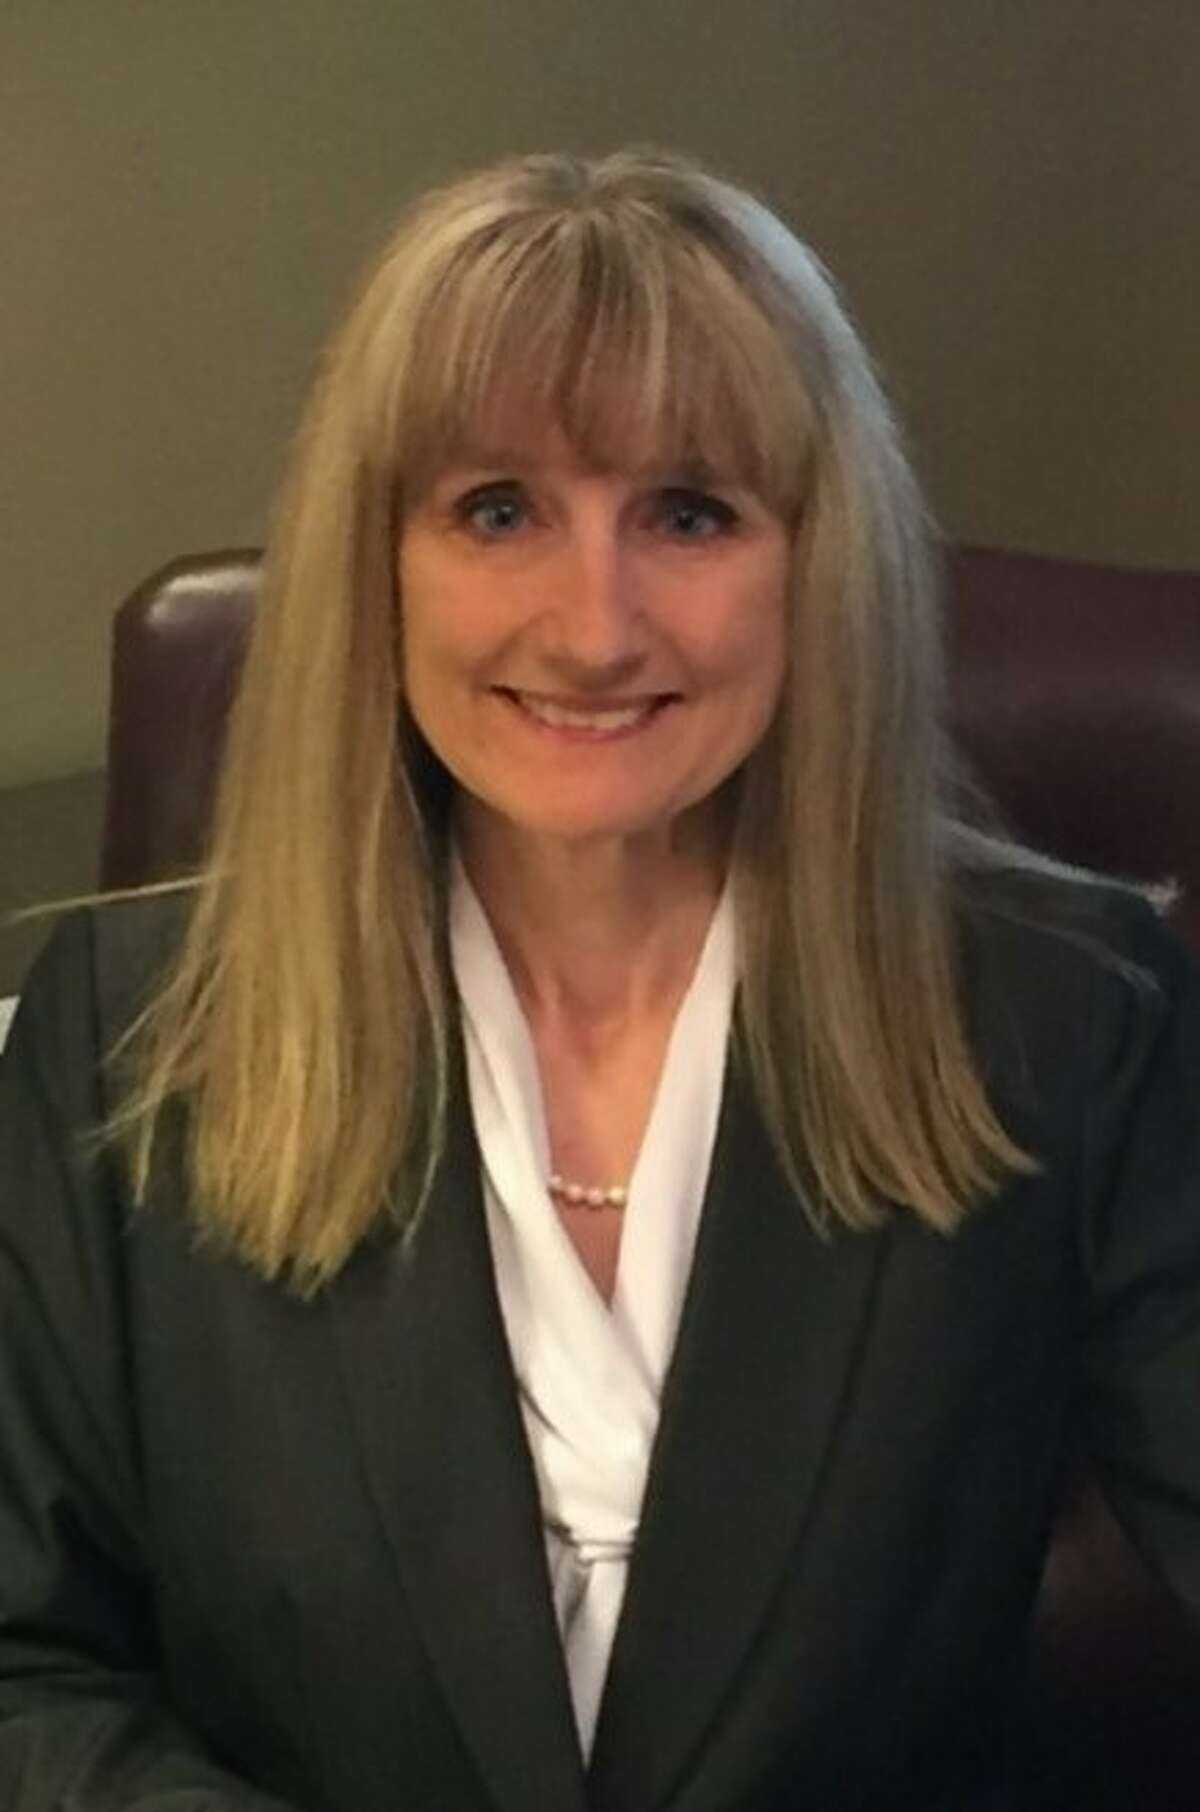 Schoharie County District Attorney Susan Mallery